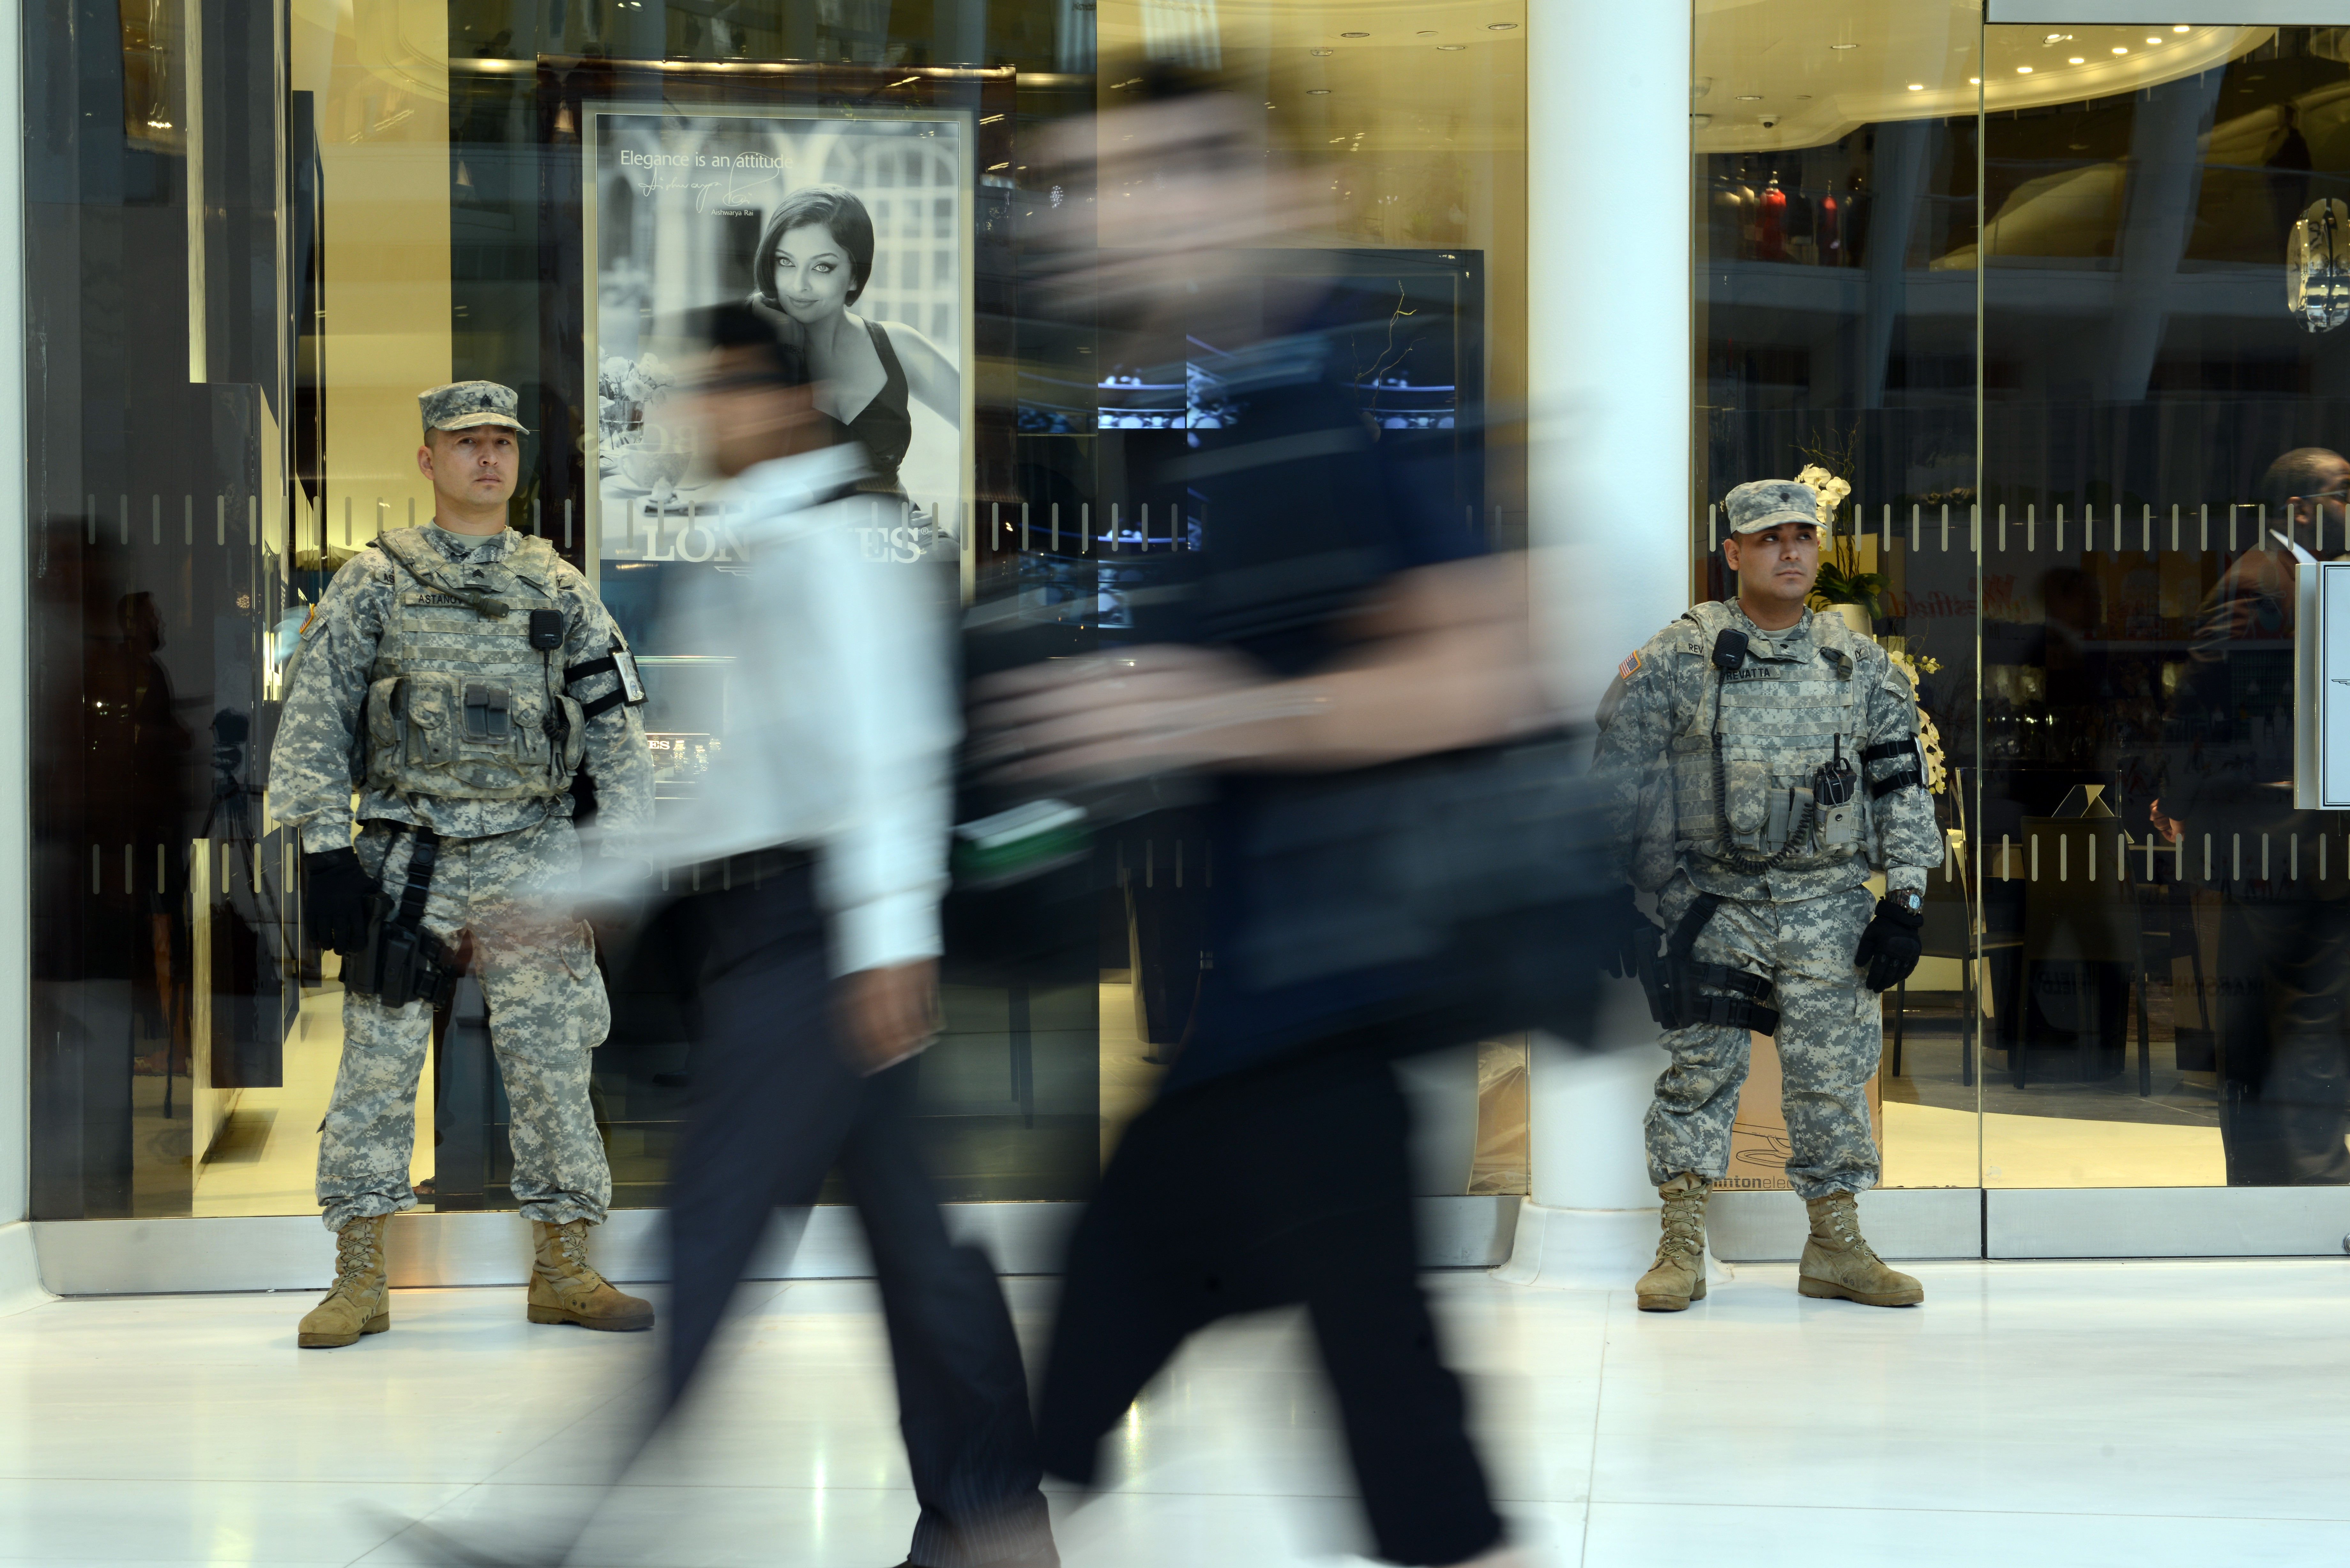 Empire Shield: Soldiers stand watch to prevent another 9/11